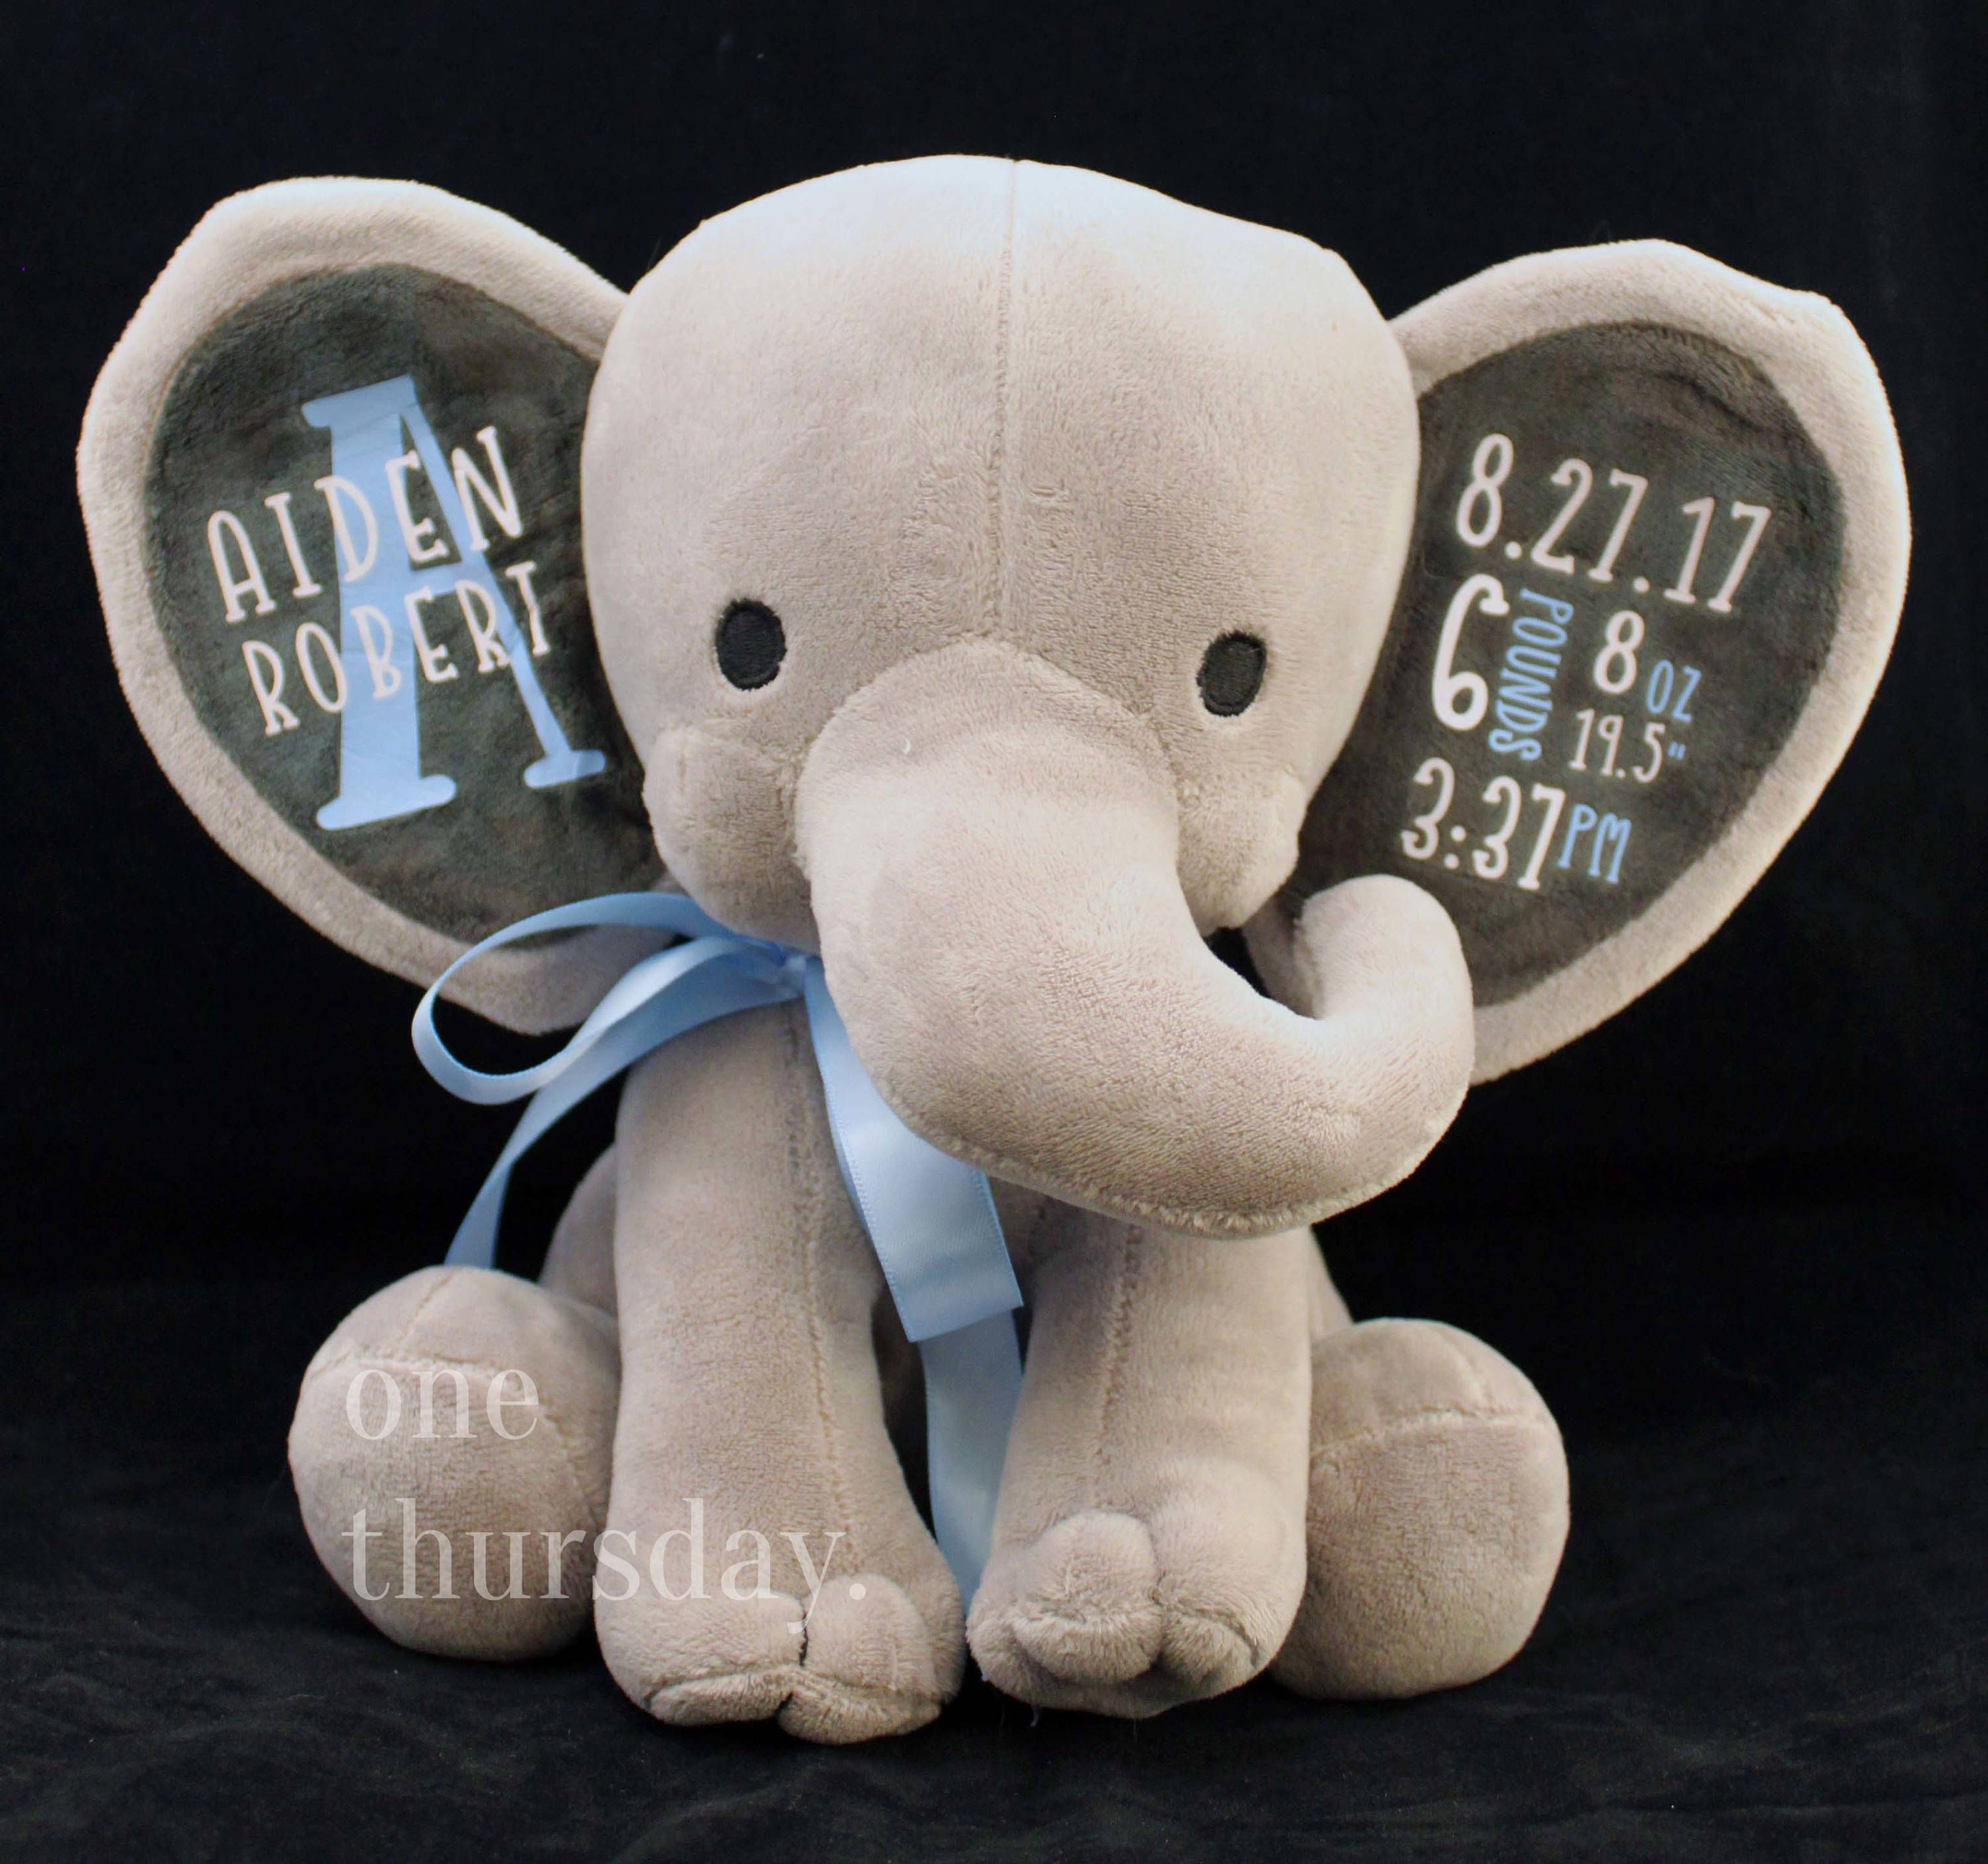 Personalized Baby Stuffed Animals, Pin By Janice Seppala On Birthday And Photo Ideas Elephant Birth Personalized Baby Gifts Baby Gifts